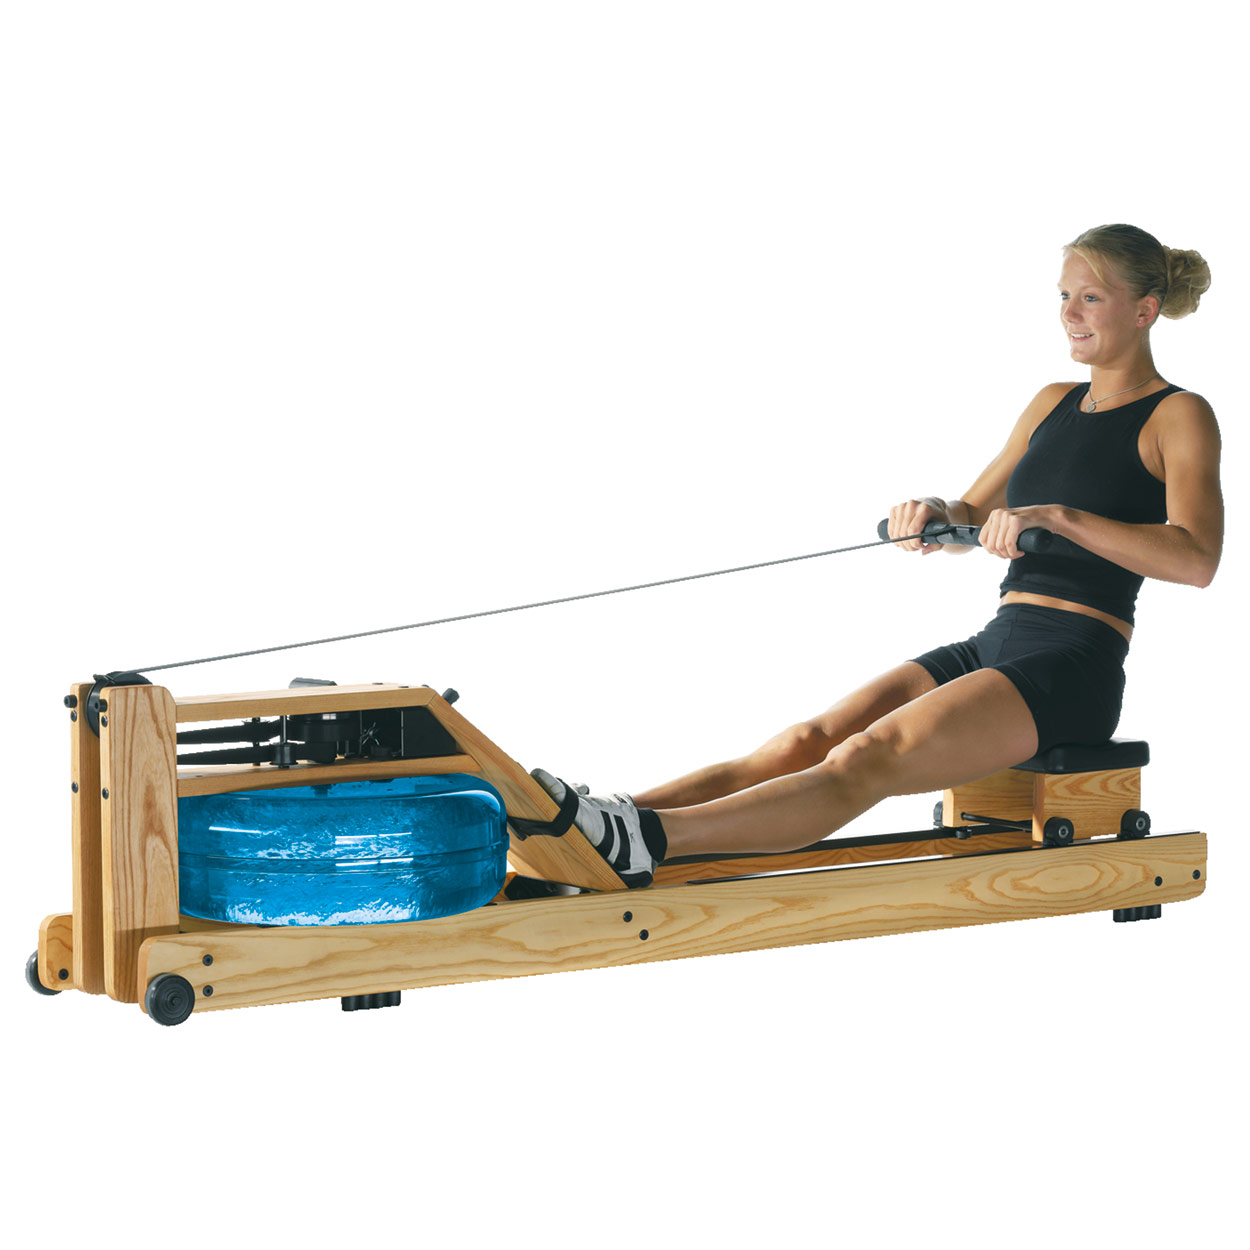 waterrower ruderger t esche natur inkl s4 monitor. Black Bedroom Furniture Sets. Home Design Ideas